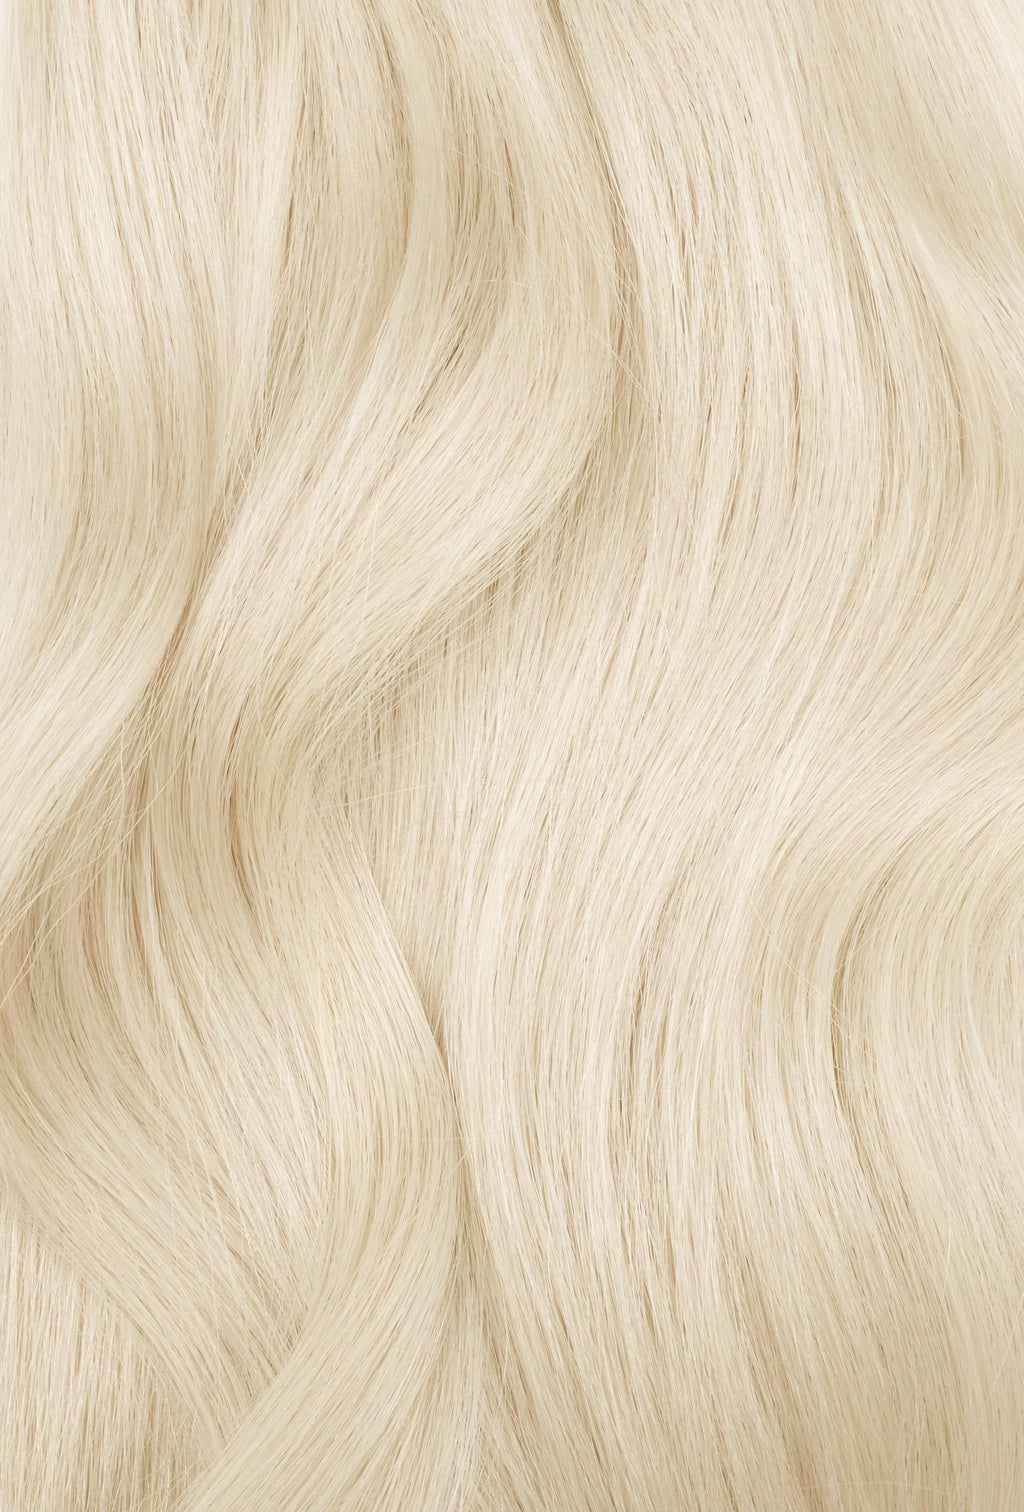 Ash Blonde (#60C) Invisible Tape (25g) 20""